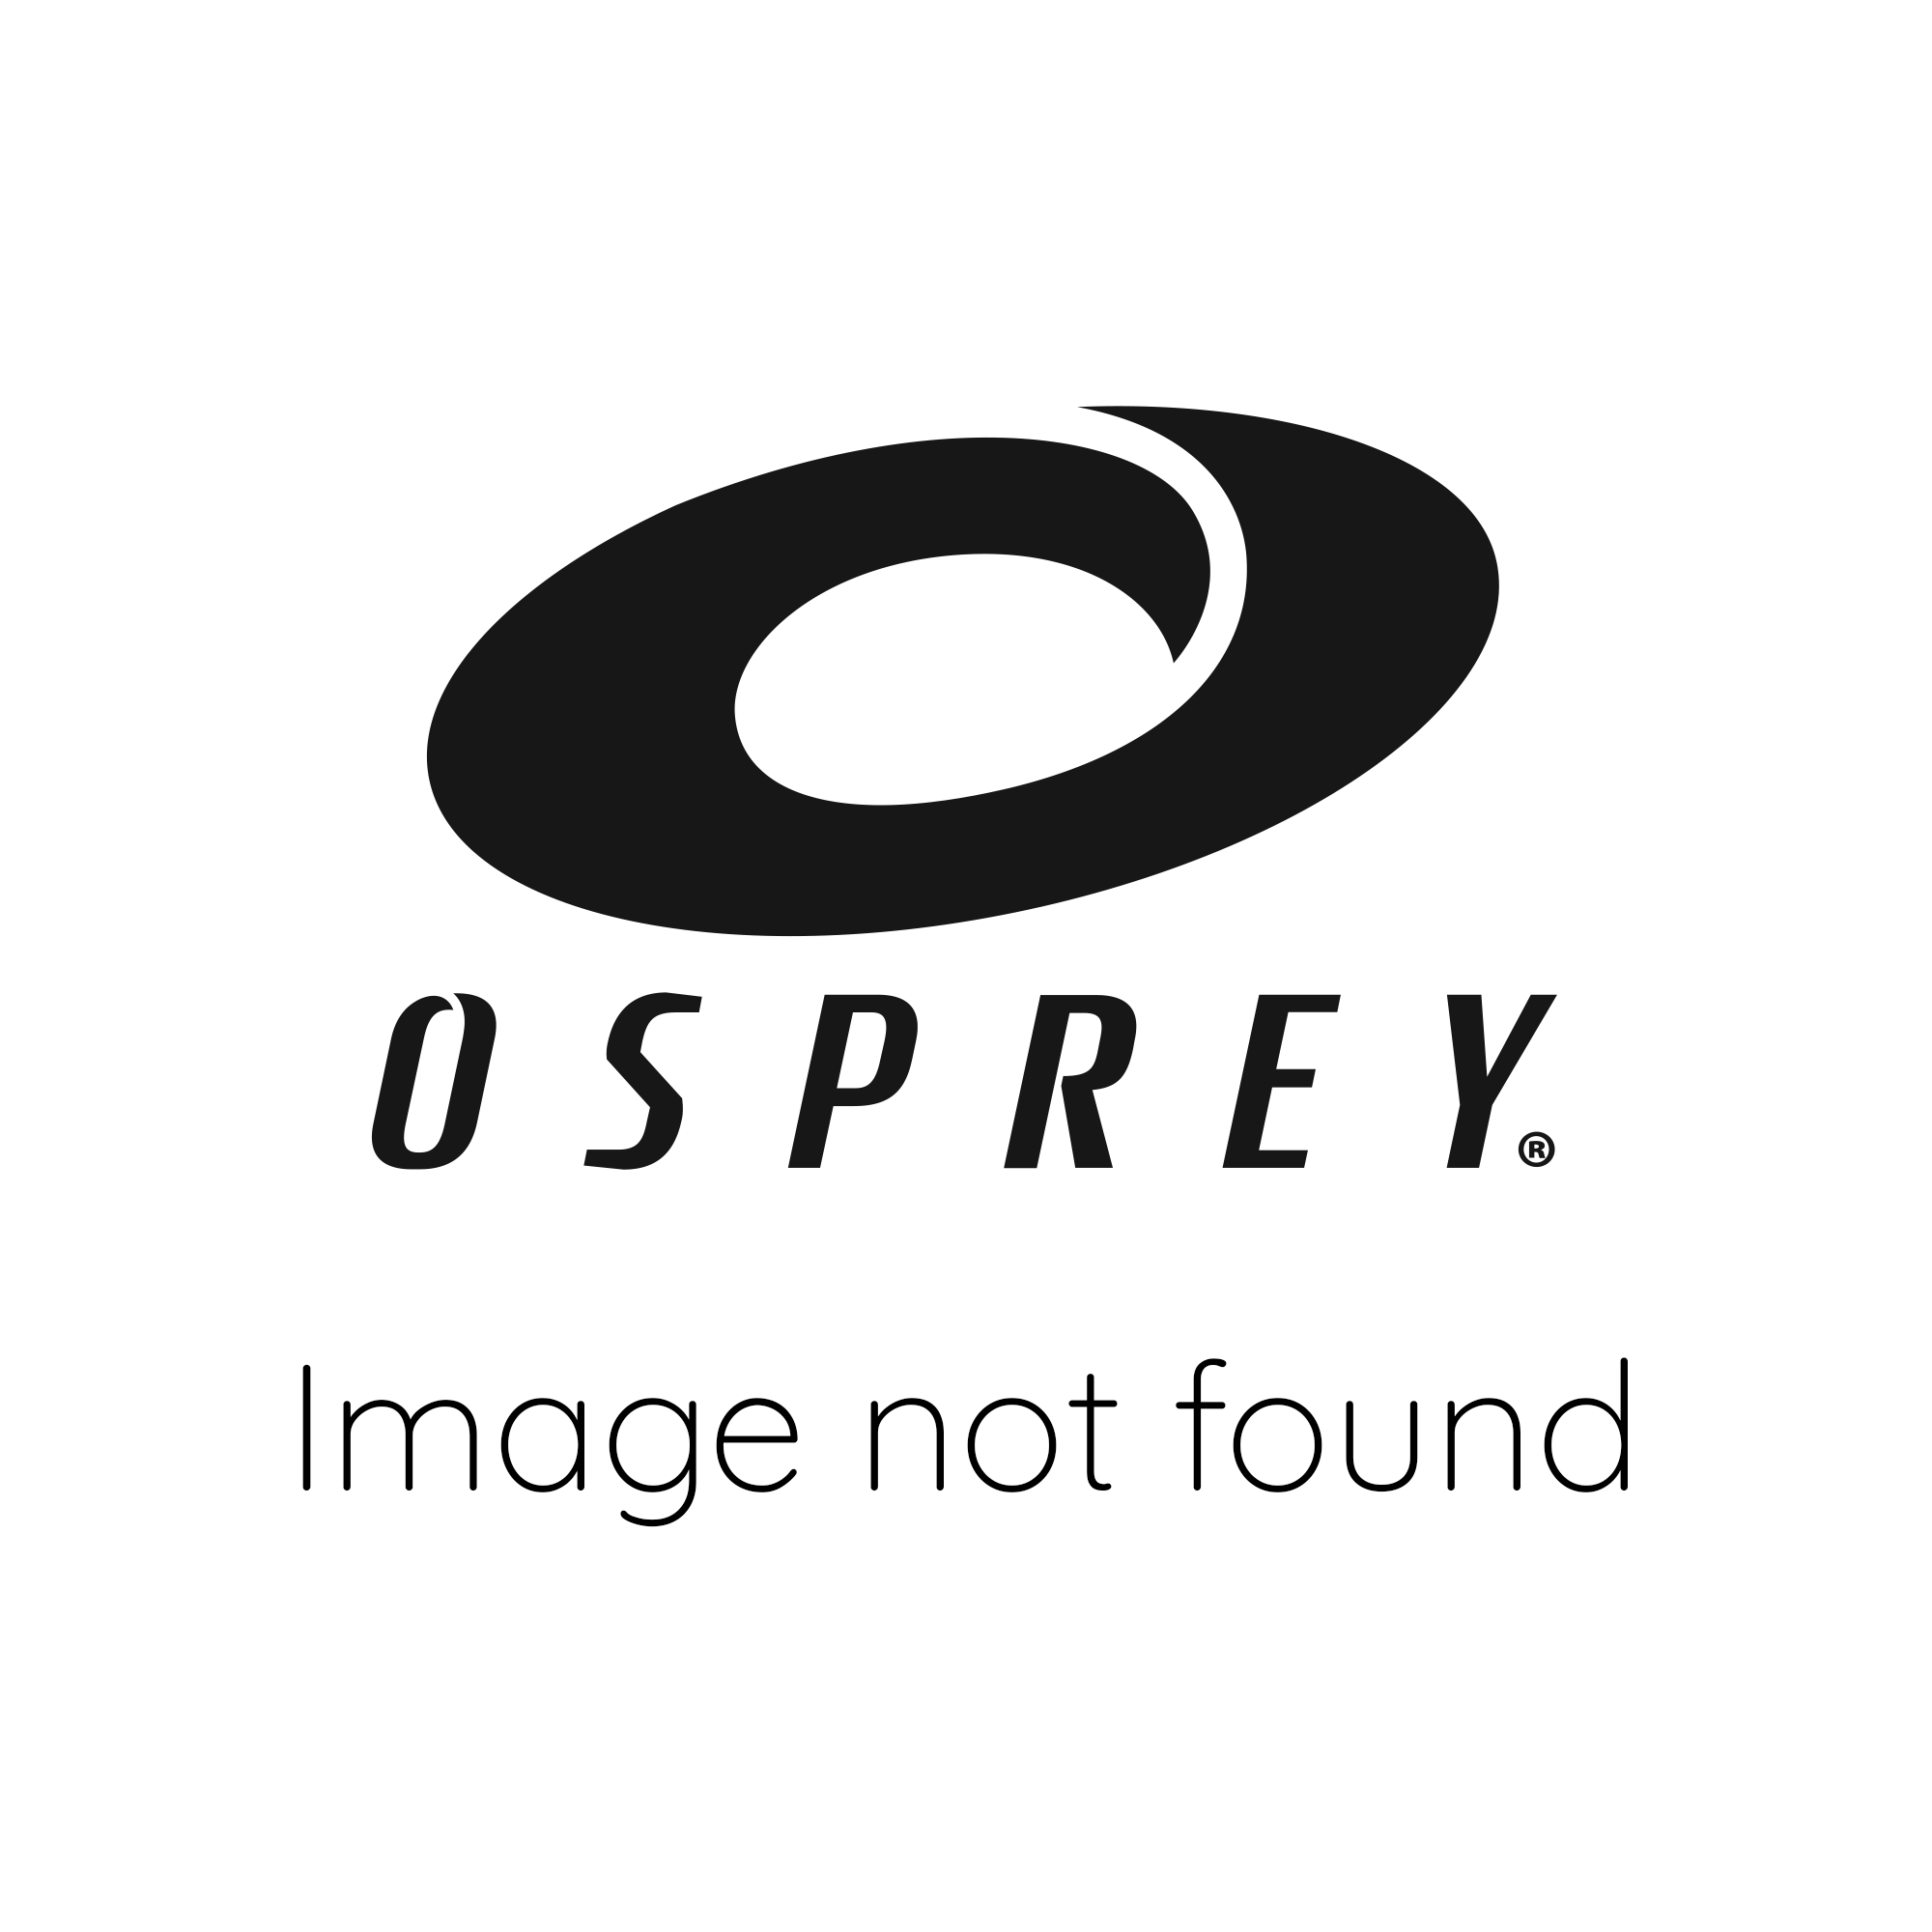 Osprey Mens 5mm Origin Full Length Wetsuit - Black